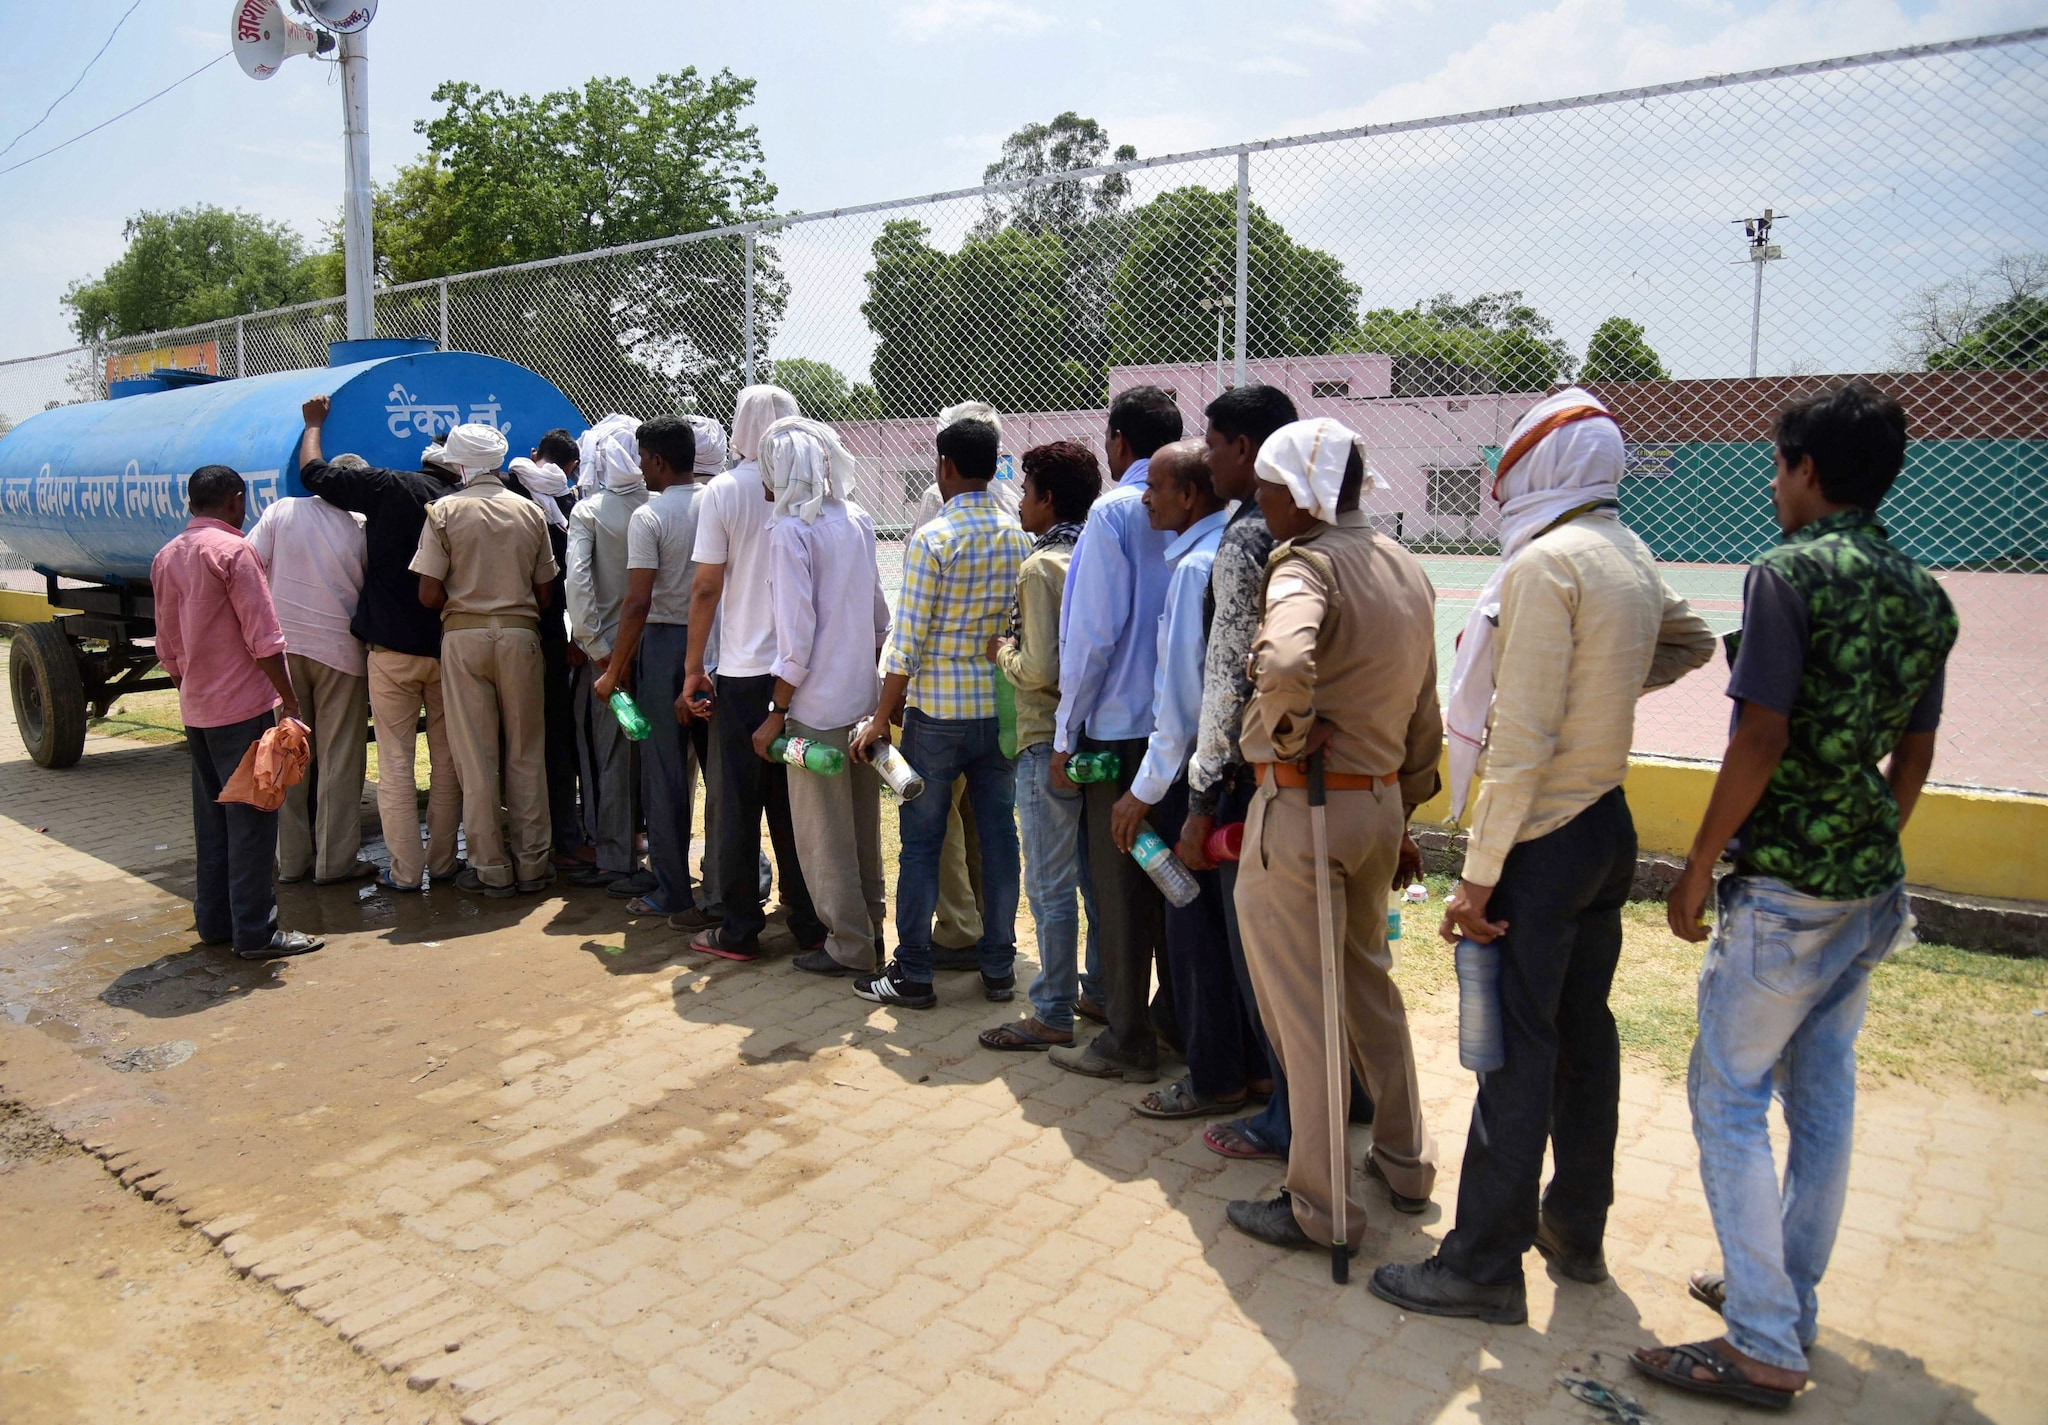 Polling staff stand in a queue to take water from a tanker, in Prayagraj, Saturday, May 11, 2019. (PTI Photo)